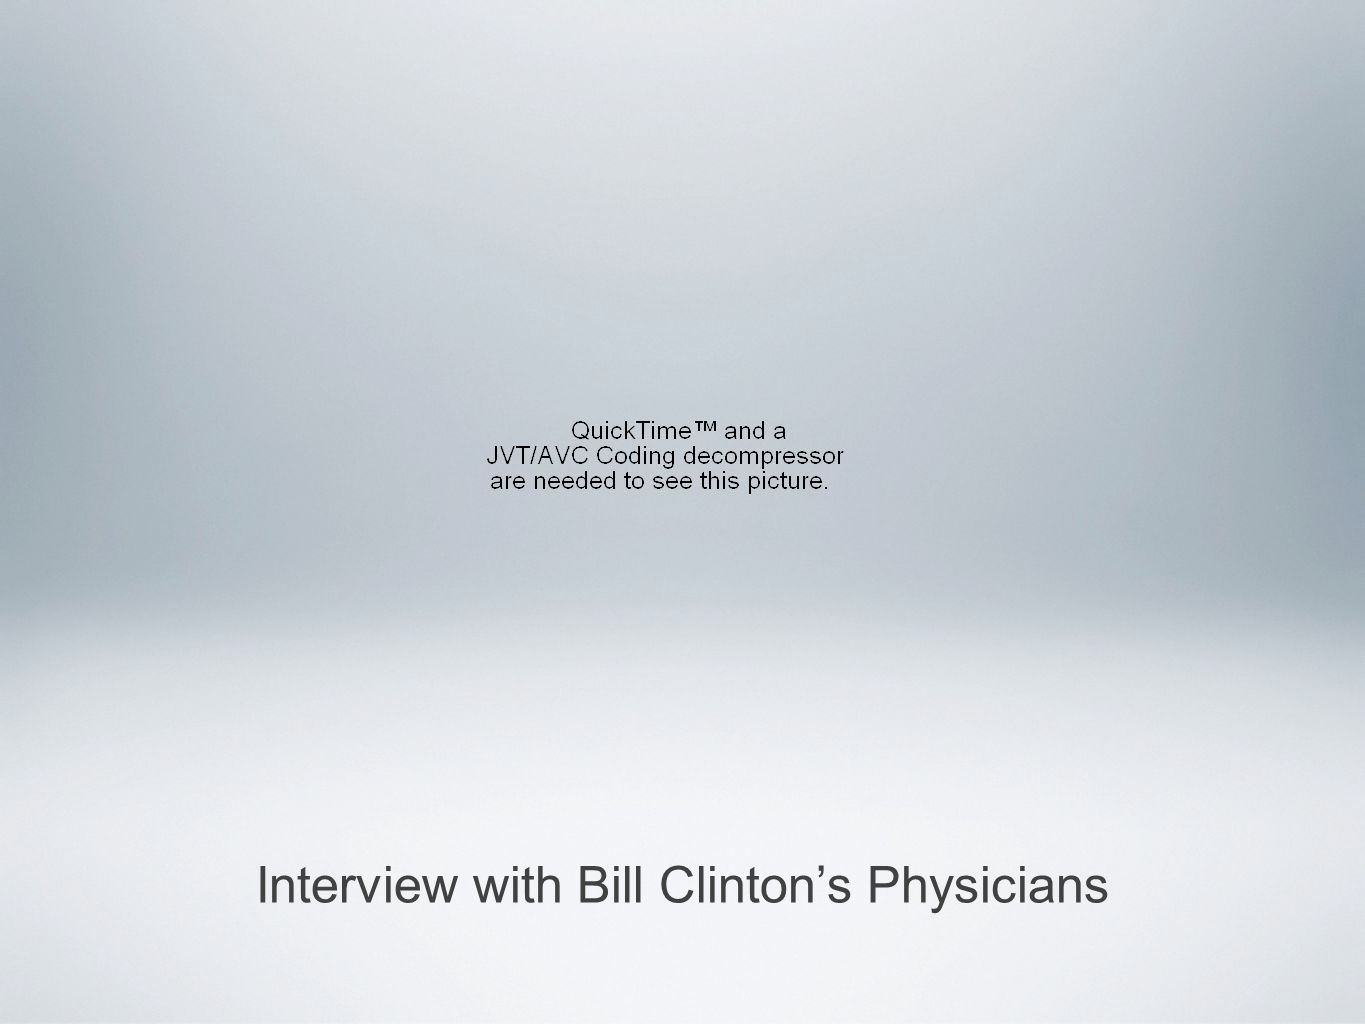 Interview with Bill Clinton's Physicians